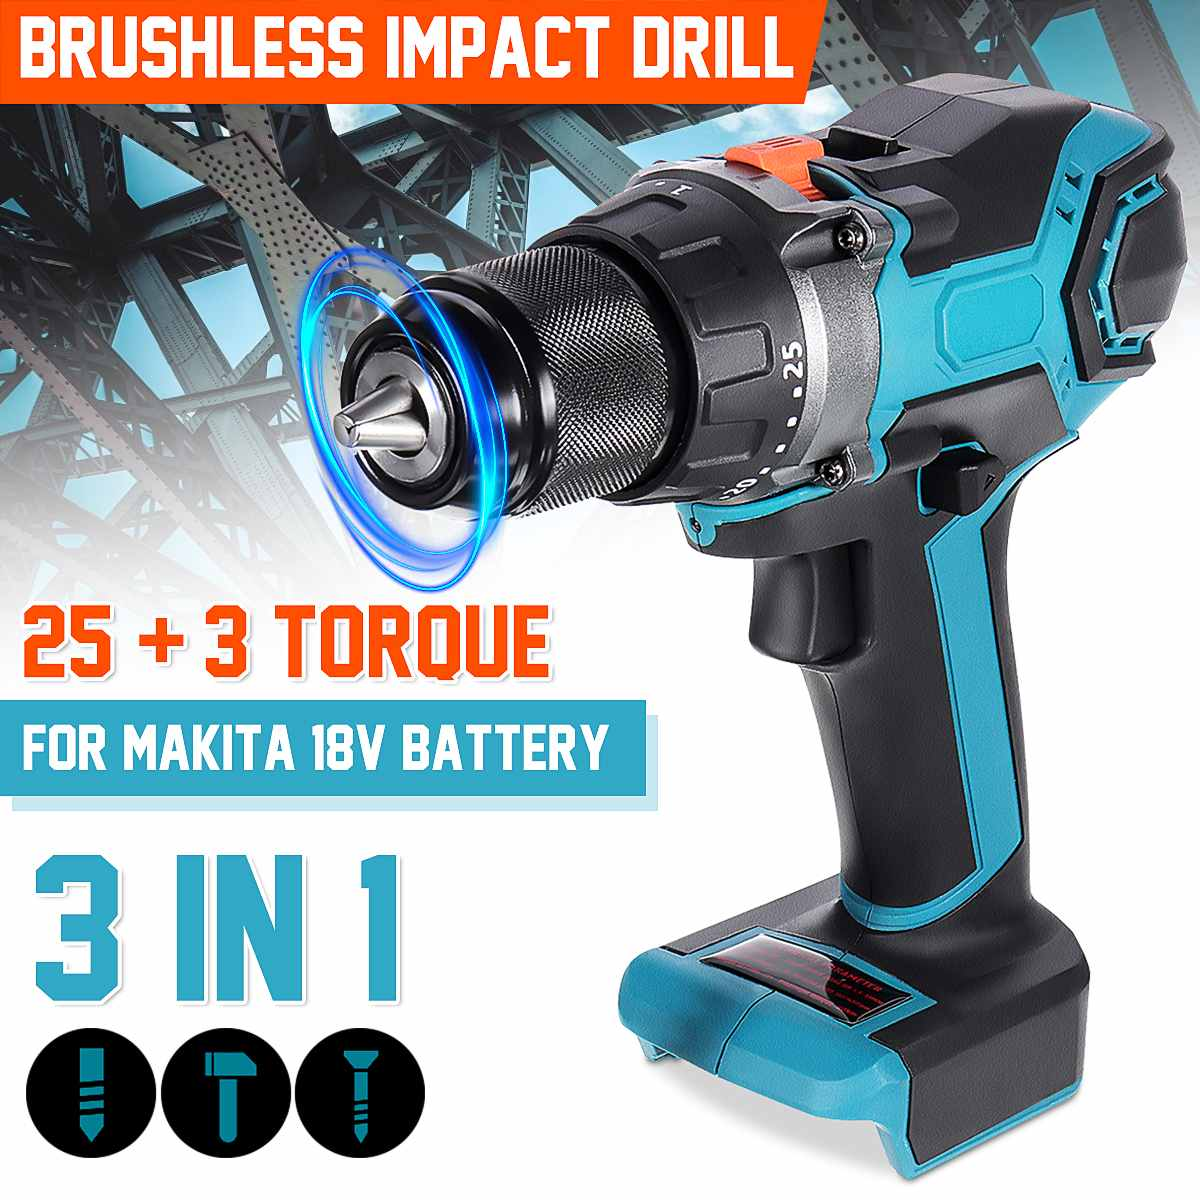 18V 13mm 450Nm 3 in 1 Brushless Electric Drill Screwdriver 20+3 Torque Cordless Impact Drill DIY Power Tools for Makita Battery 3 in 1 13mm brushless electric hammer drill electric screwdriver 20 3 torque cordless impact drill for makita 18v battery